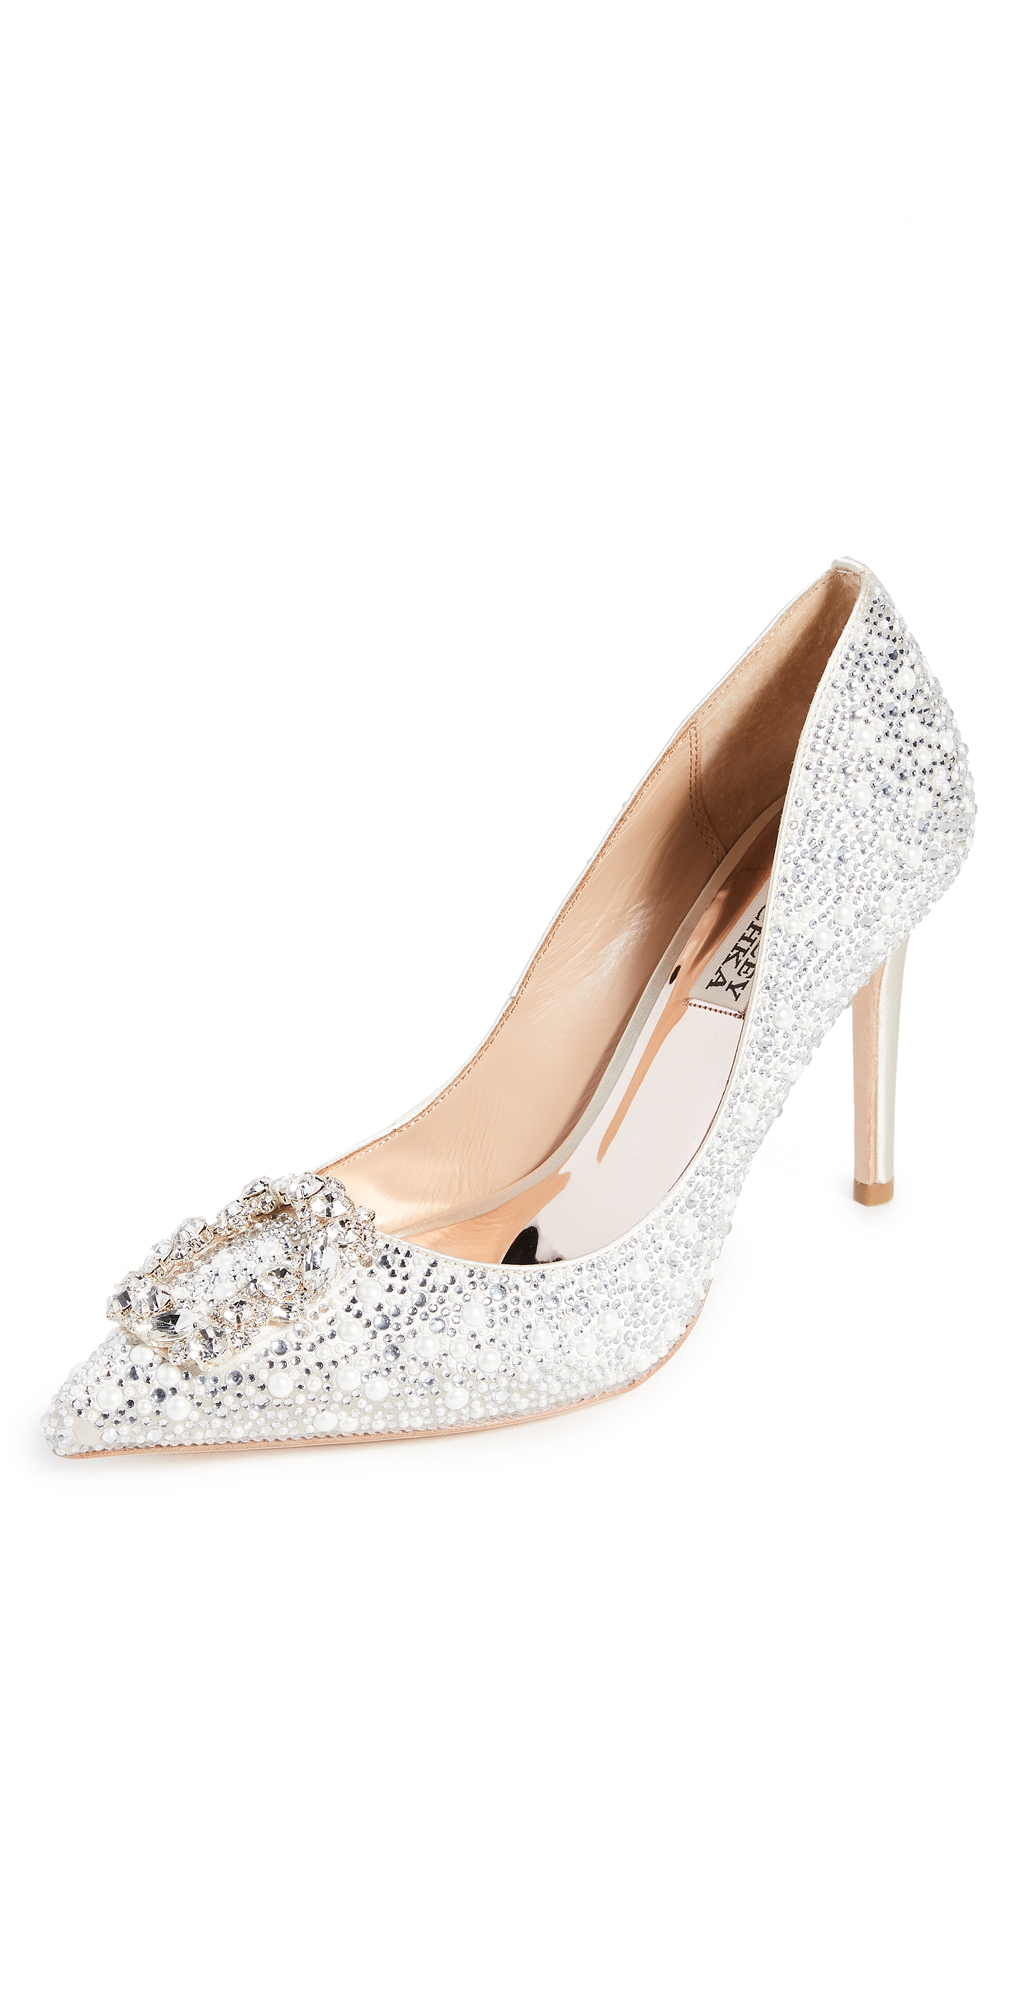 Badgley Mischka Cher II Pumps